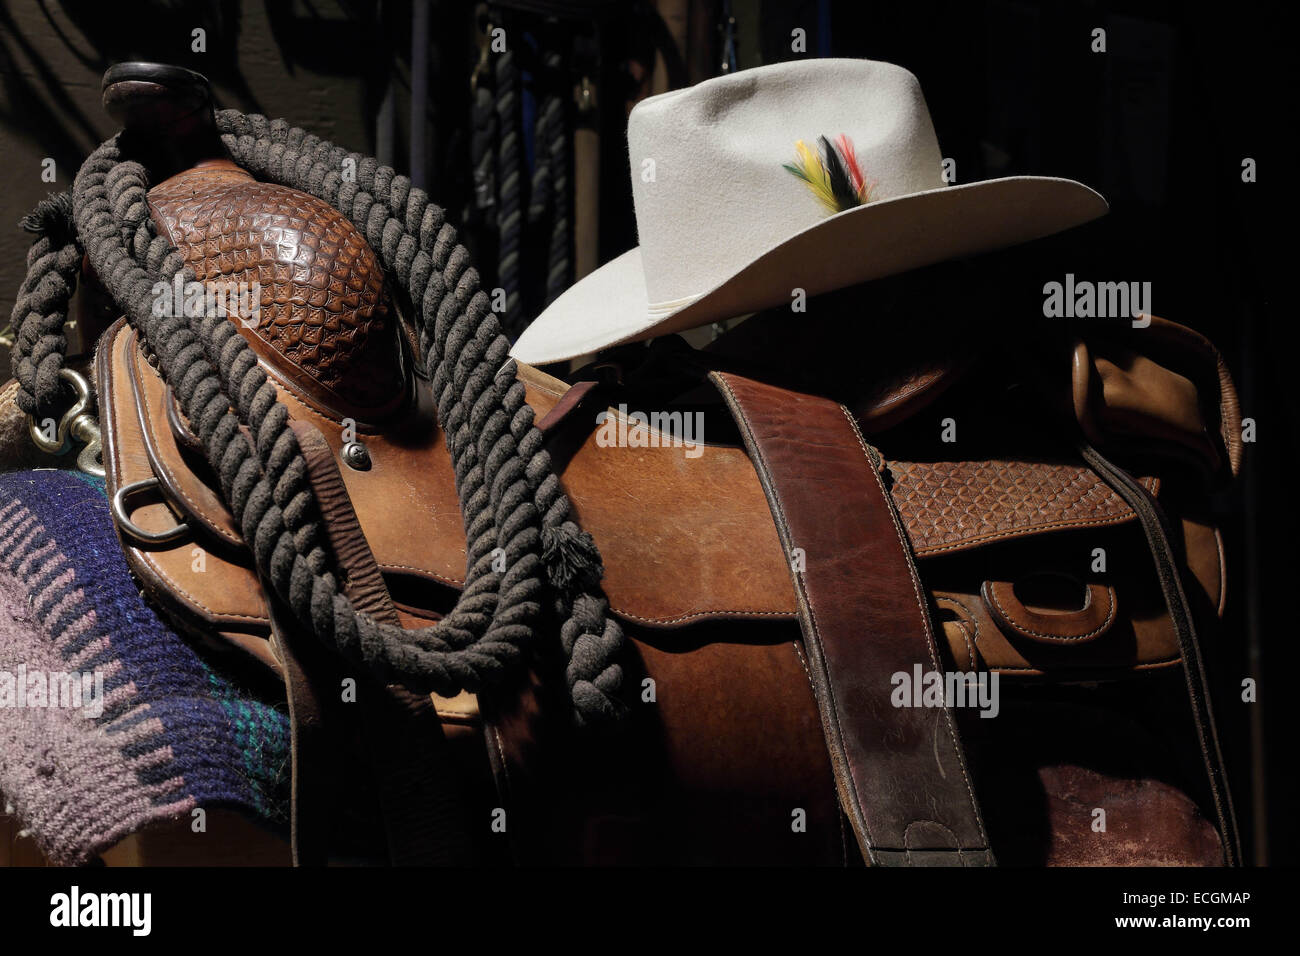 A low light still life photograph of a saddle and a Cowboy Hat - Stock Image